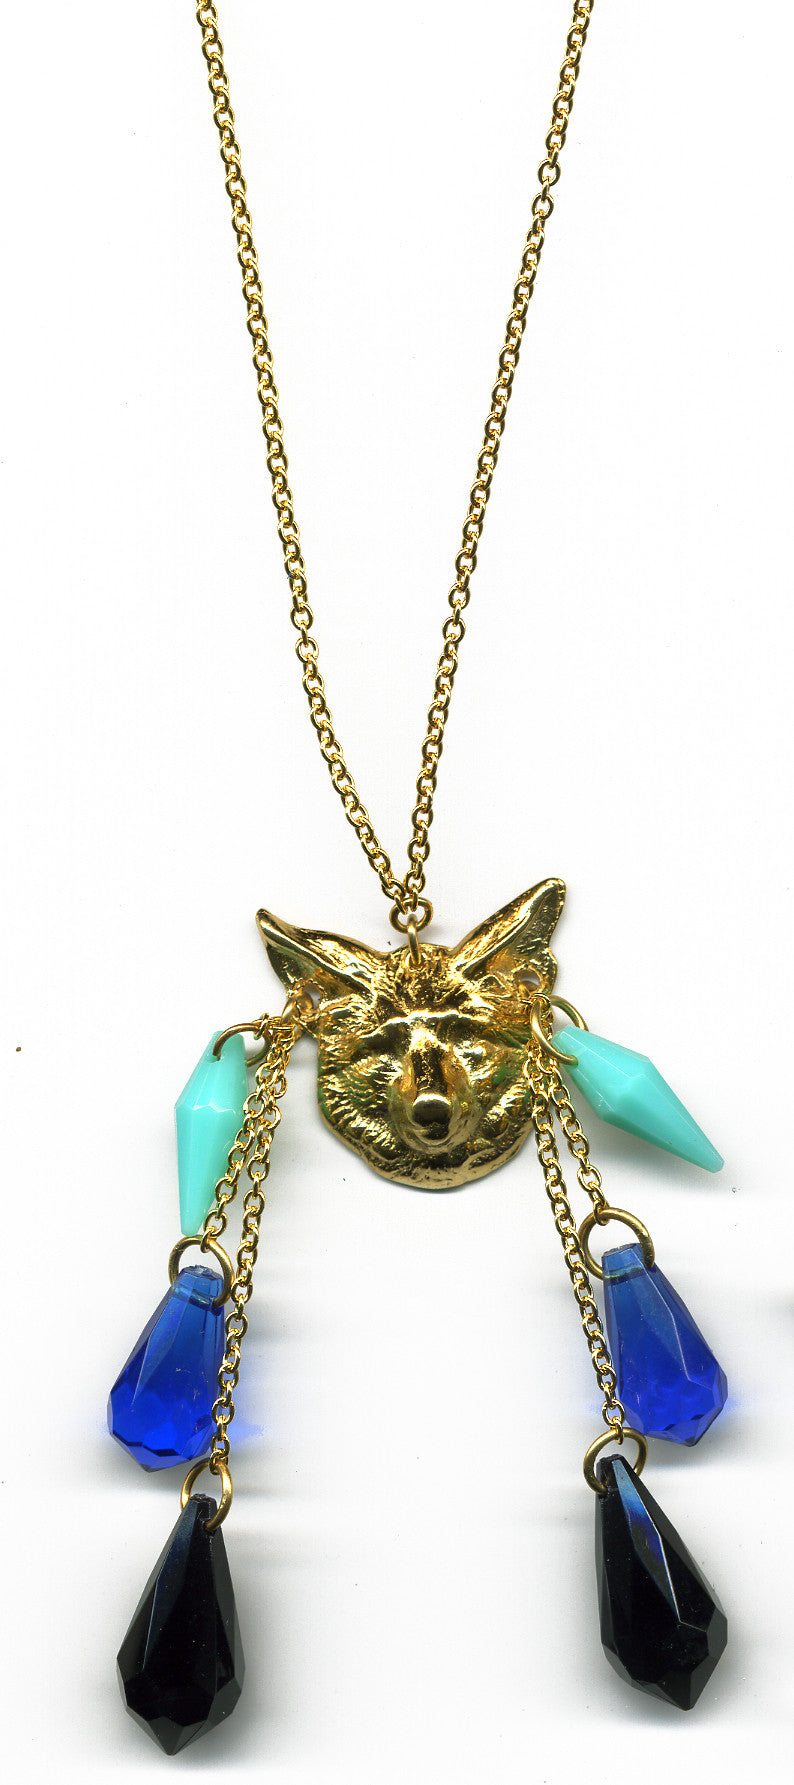 Cerillos fox necklace - Family Affairs